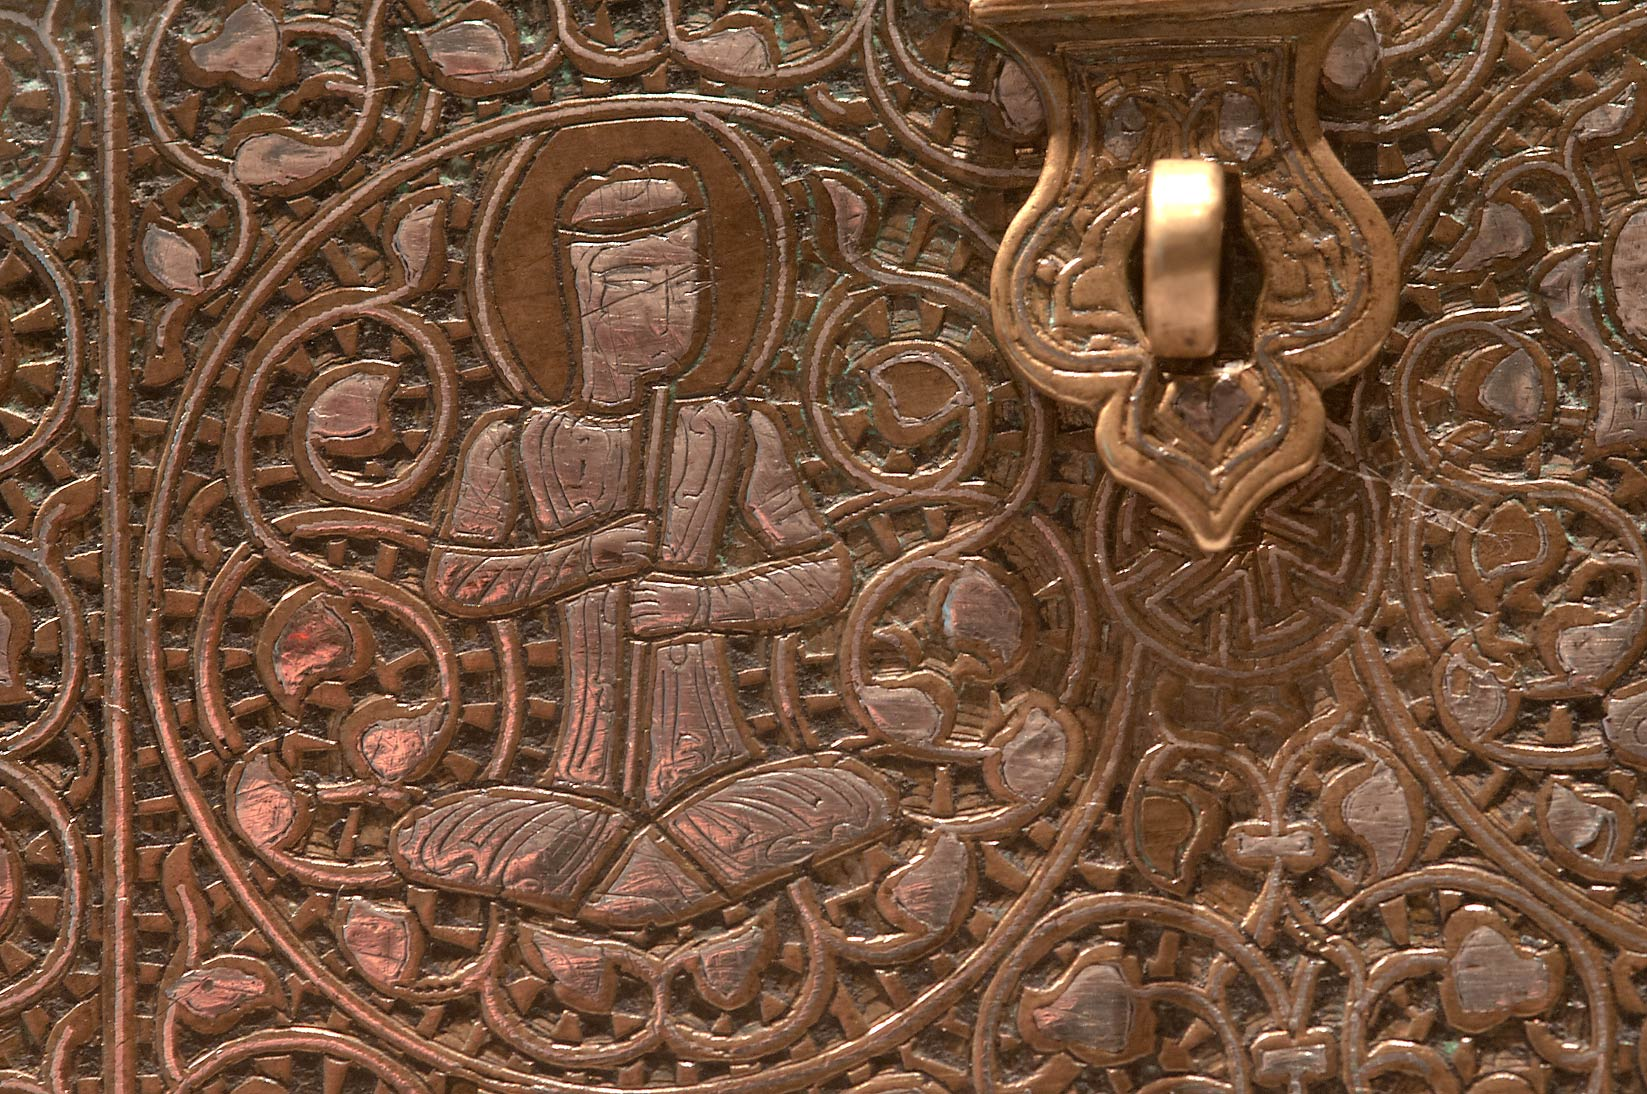 Detail of a casket (Iran, c. 1300, brass with...in Museum of Islamic Art. Doha, Qatar